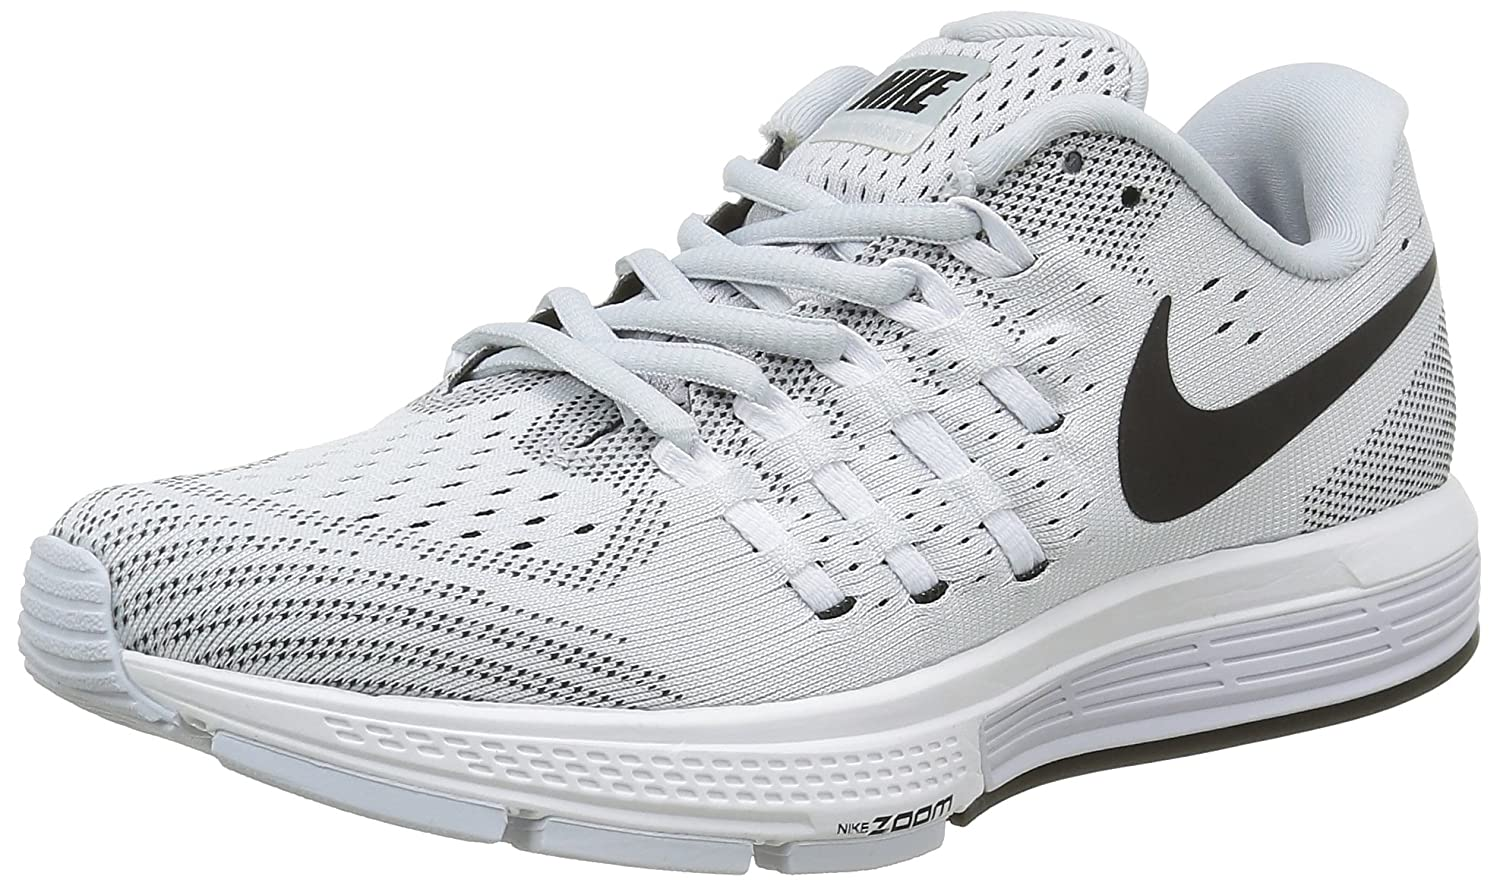 6e24d0bef88e Nike Women s WMNS Air Zoom Vomero 11 Running Shoes  Amazon.co.uk  Shoes    Bags